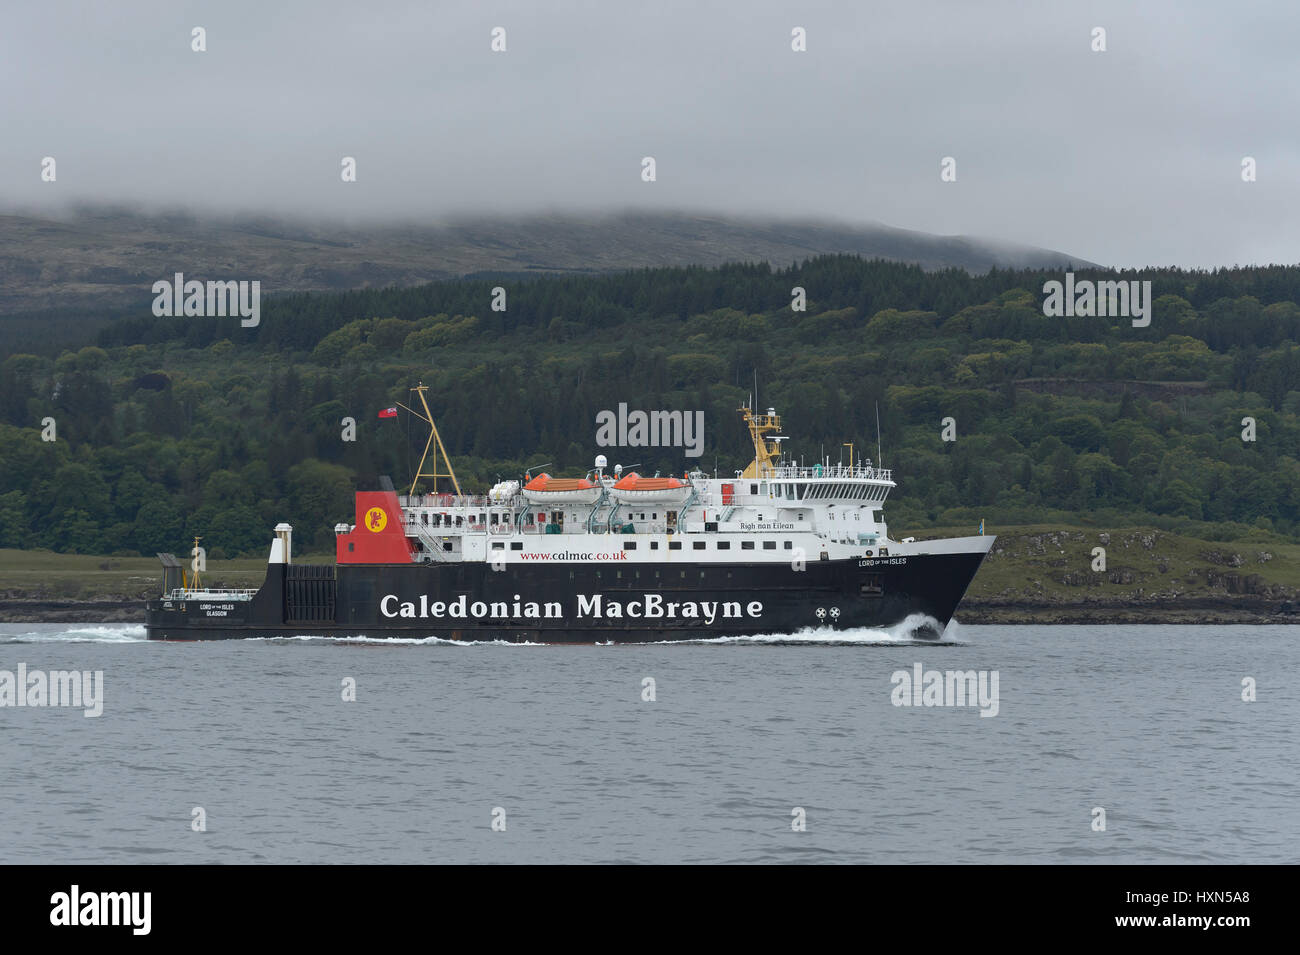 """Caledonian MacBrayne ferry """"Lord of the Isles"""" in the Sound of Mull, Scotland. June 2015. - Stock Image"""